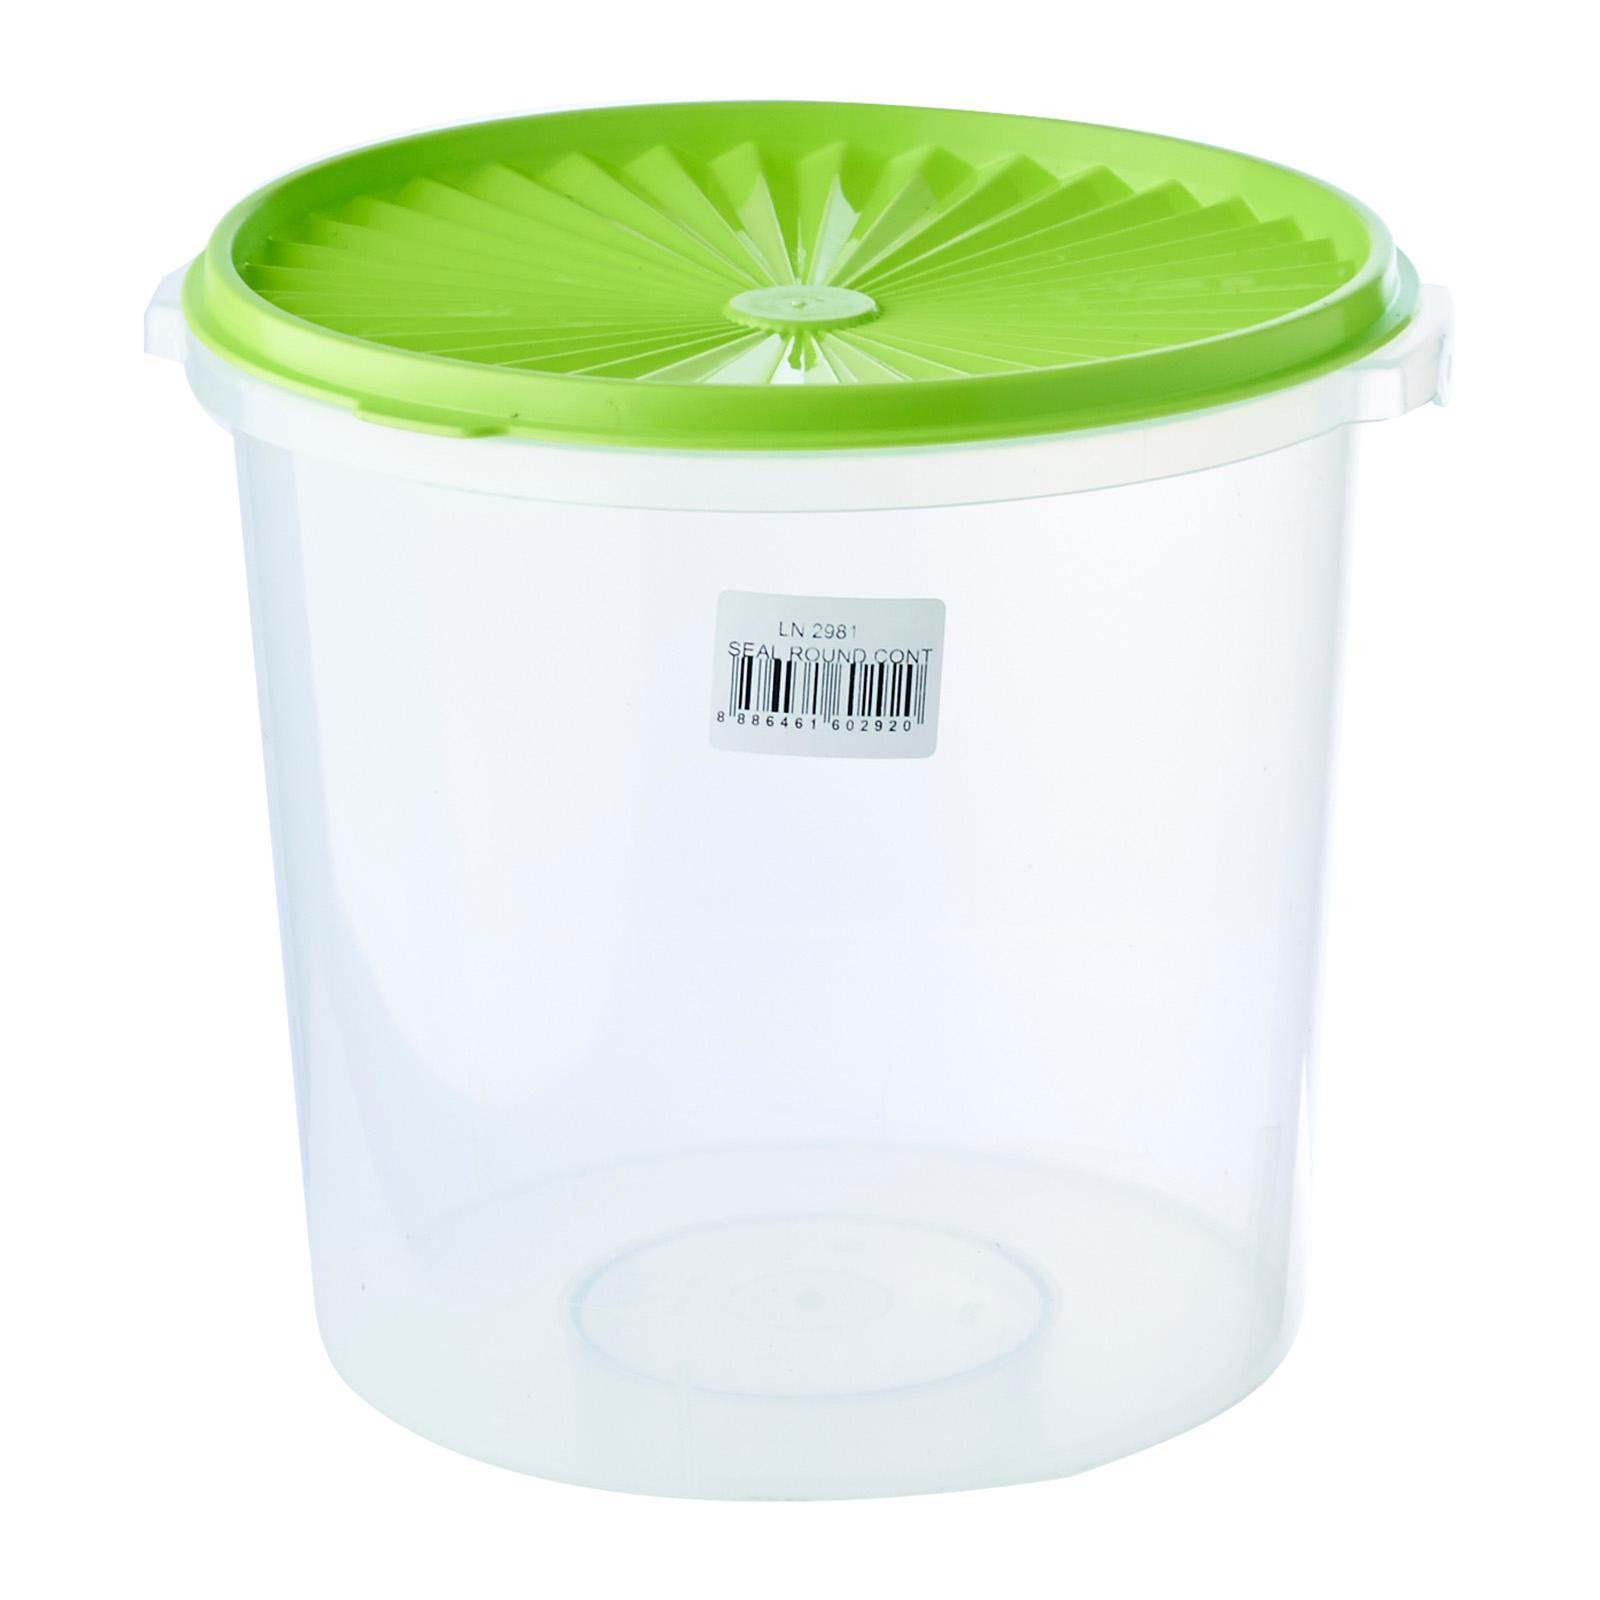 Leopard 5630 Seal And Store Container 5L - Household